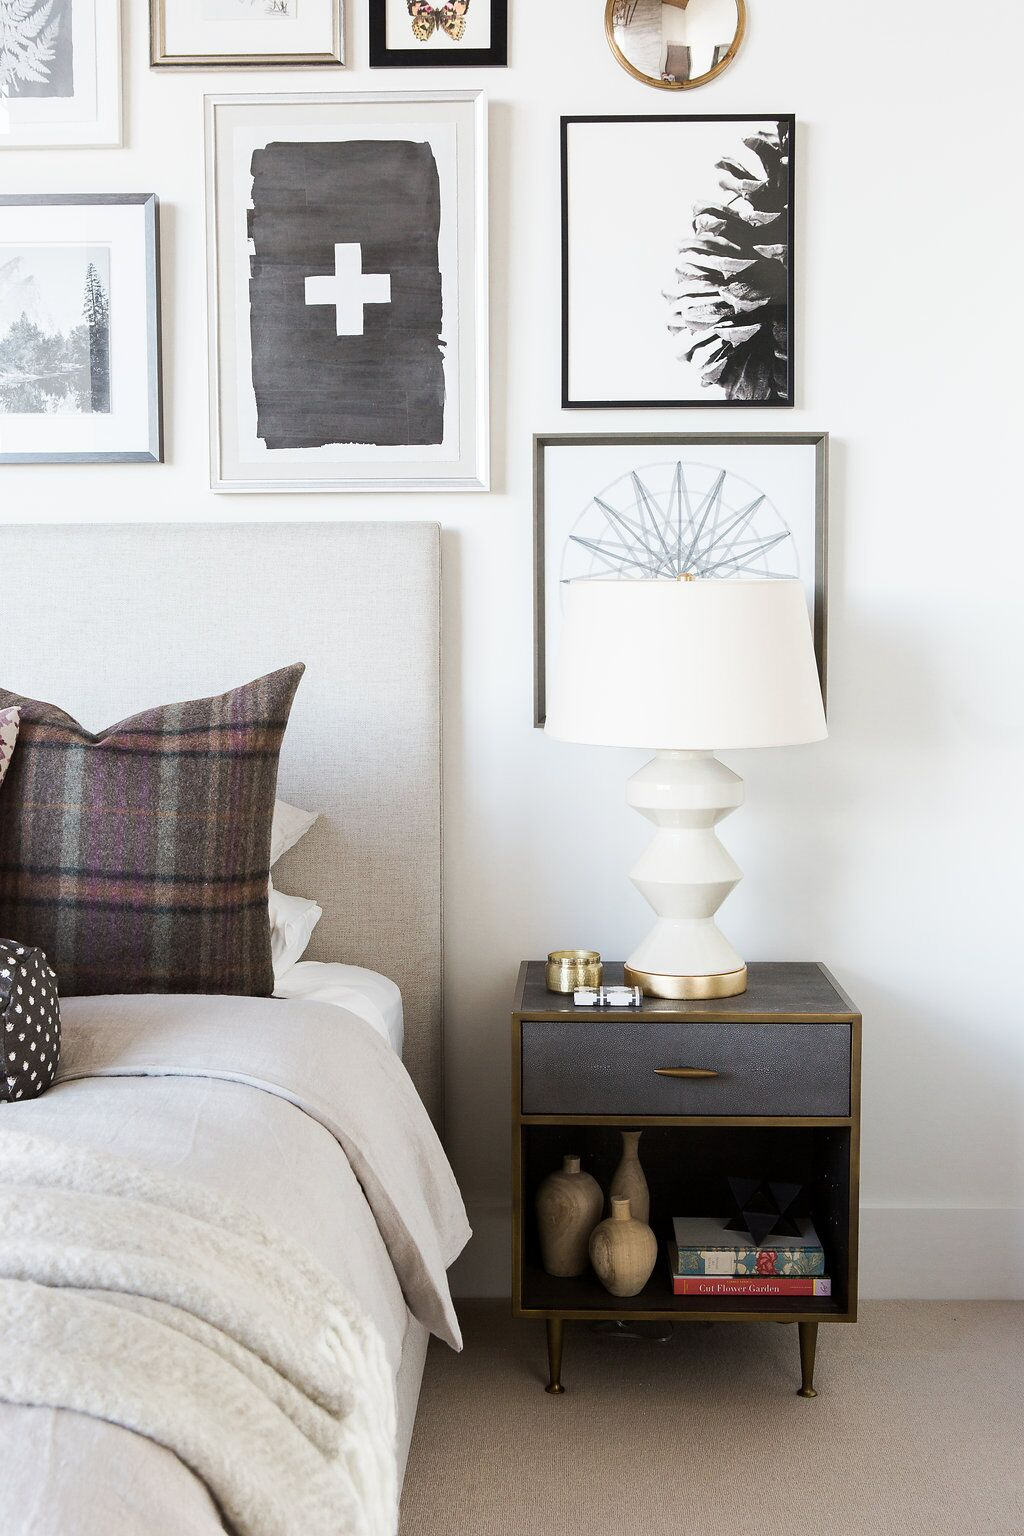 Small grey nightstand next to white bed